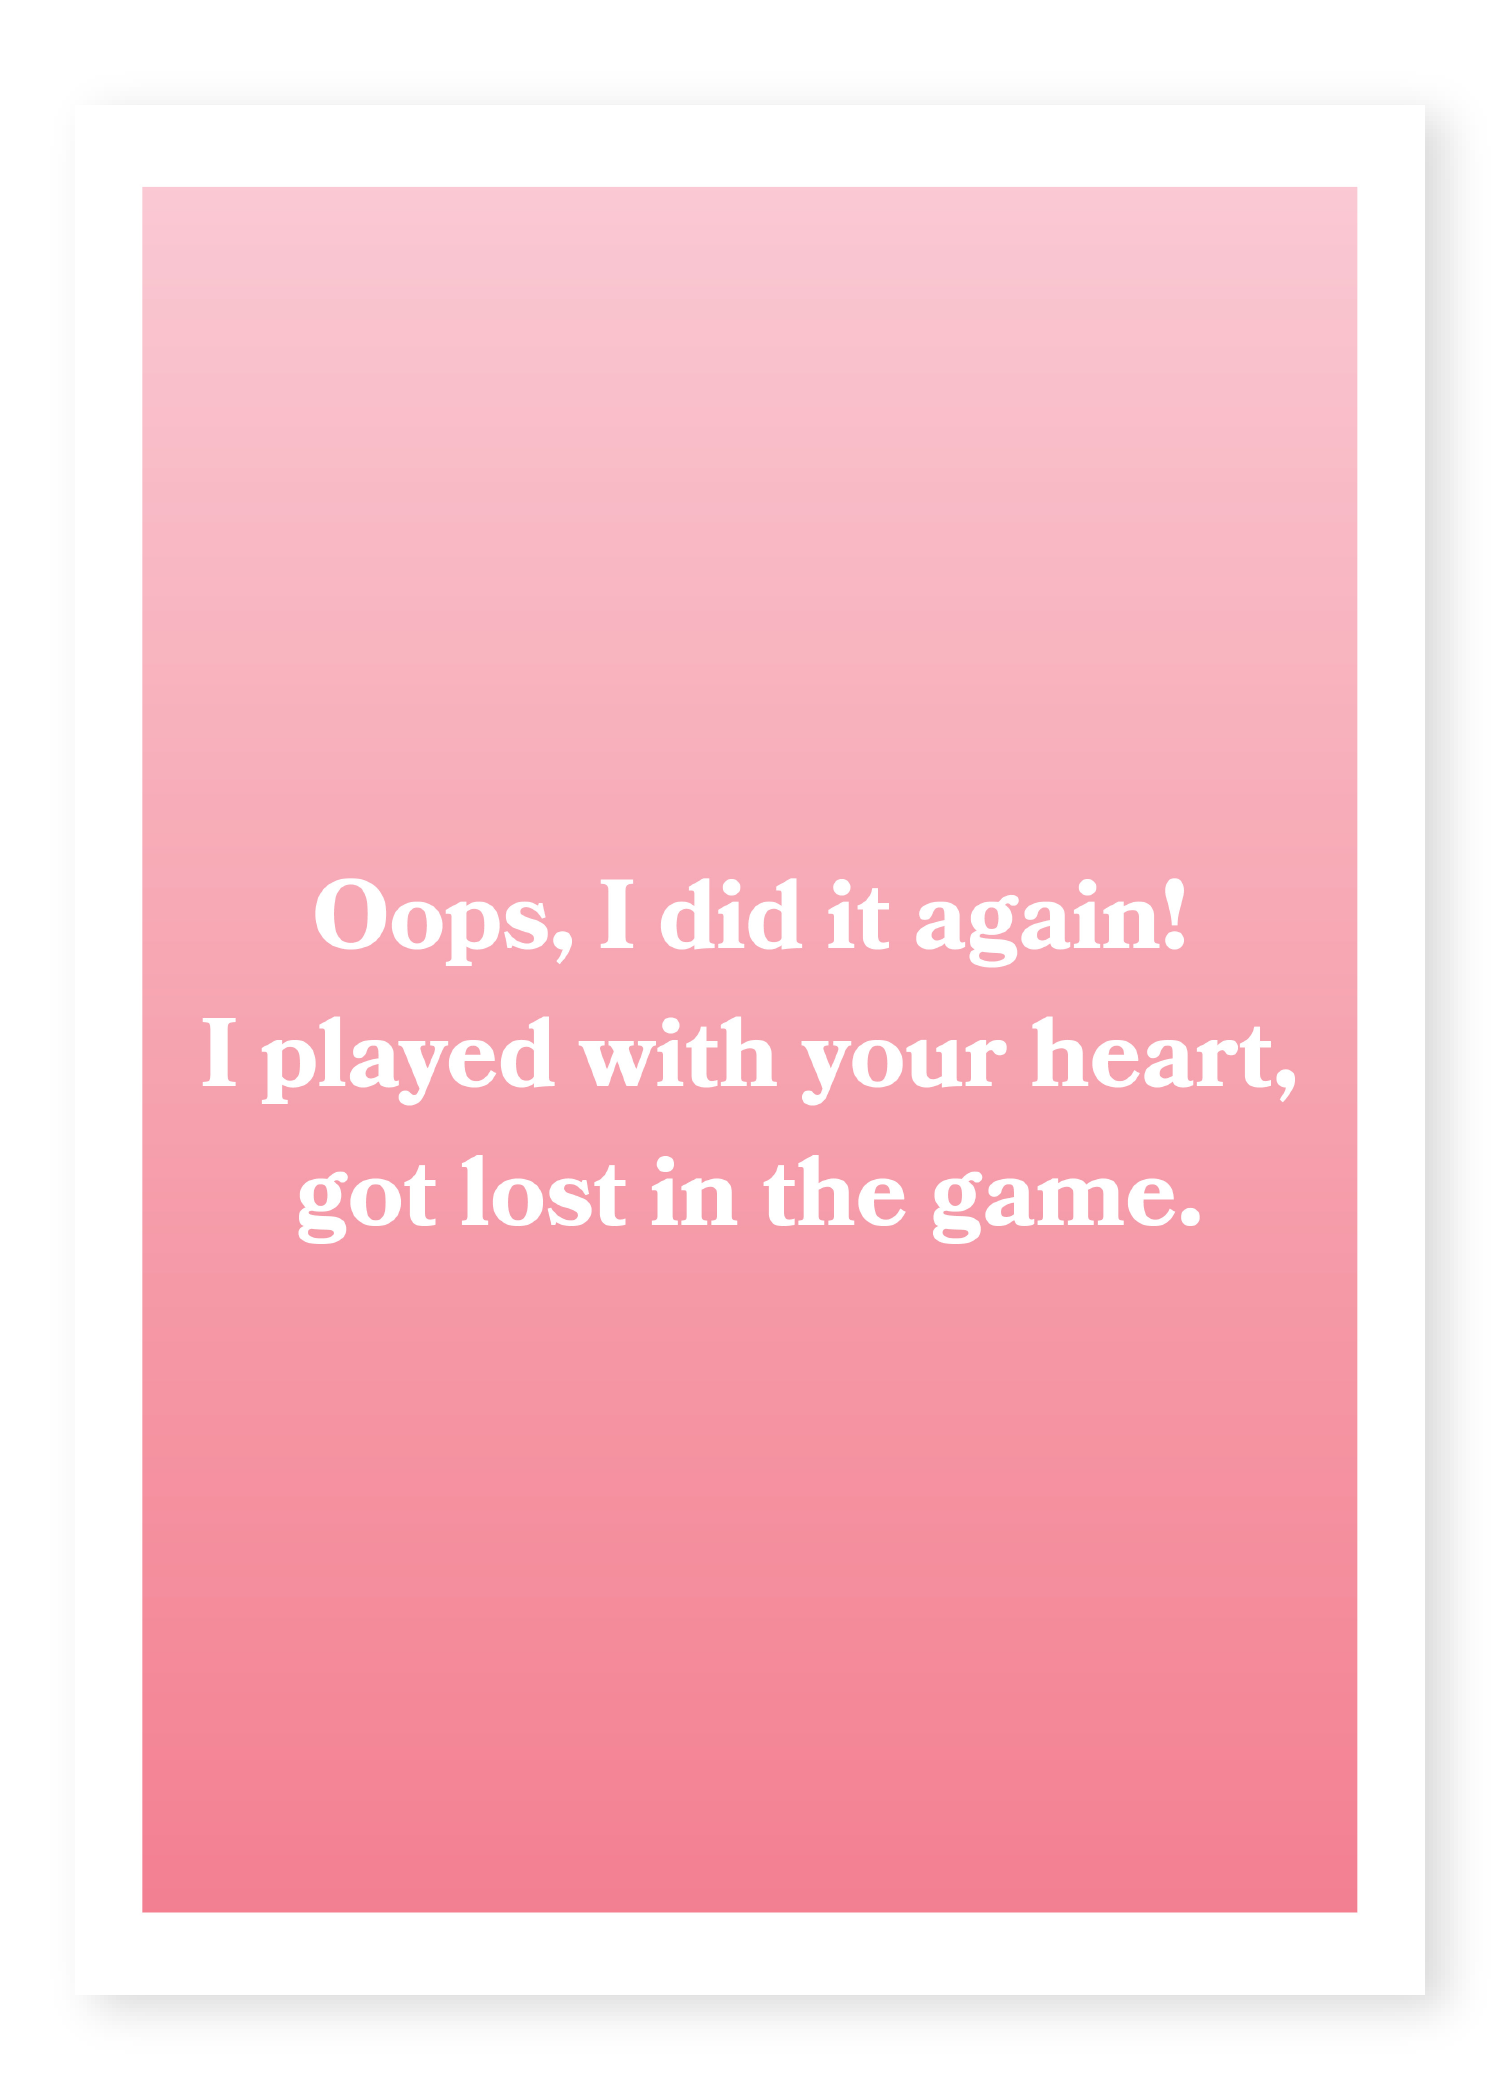 songsofmyyouth-08.png